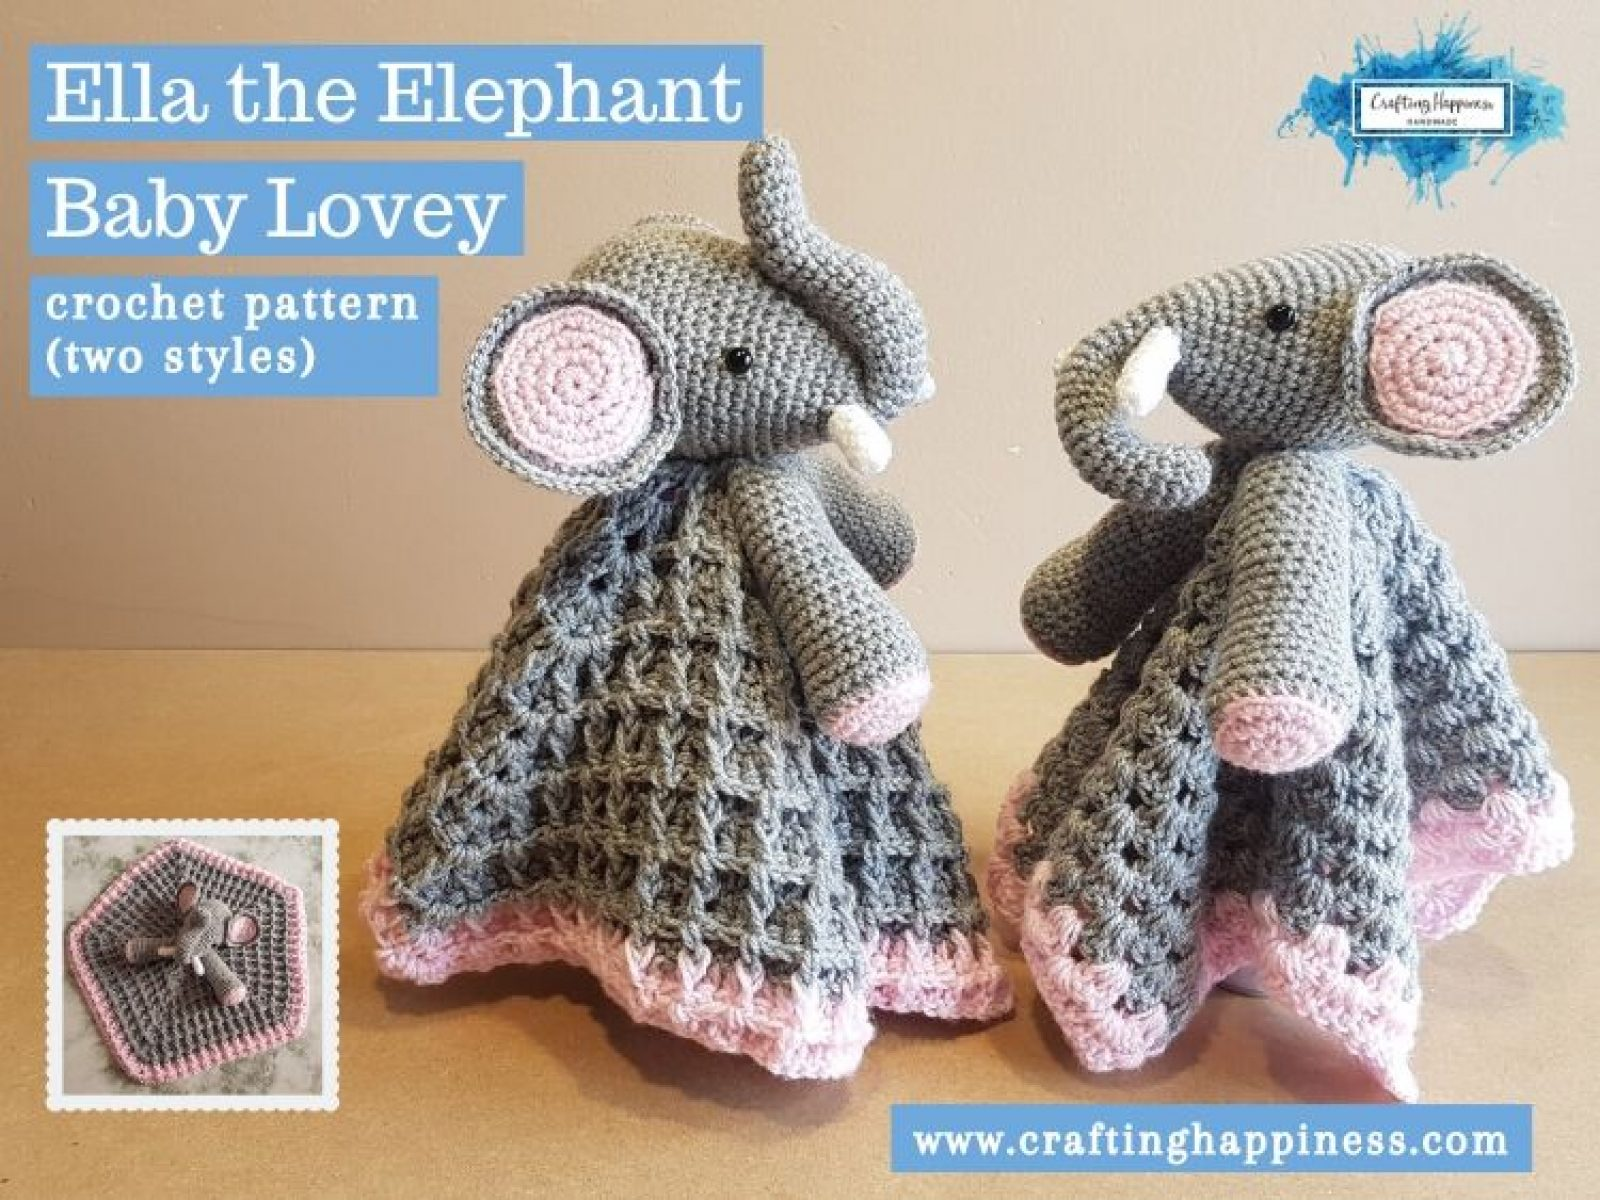 Ella the Elephant Baby Lovey Baby Lovey by Crafting Happiness FACEBOOK POSTER